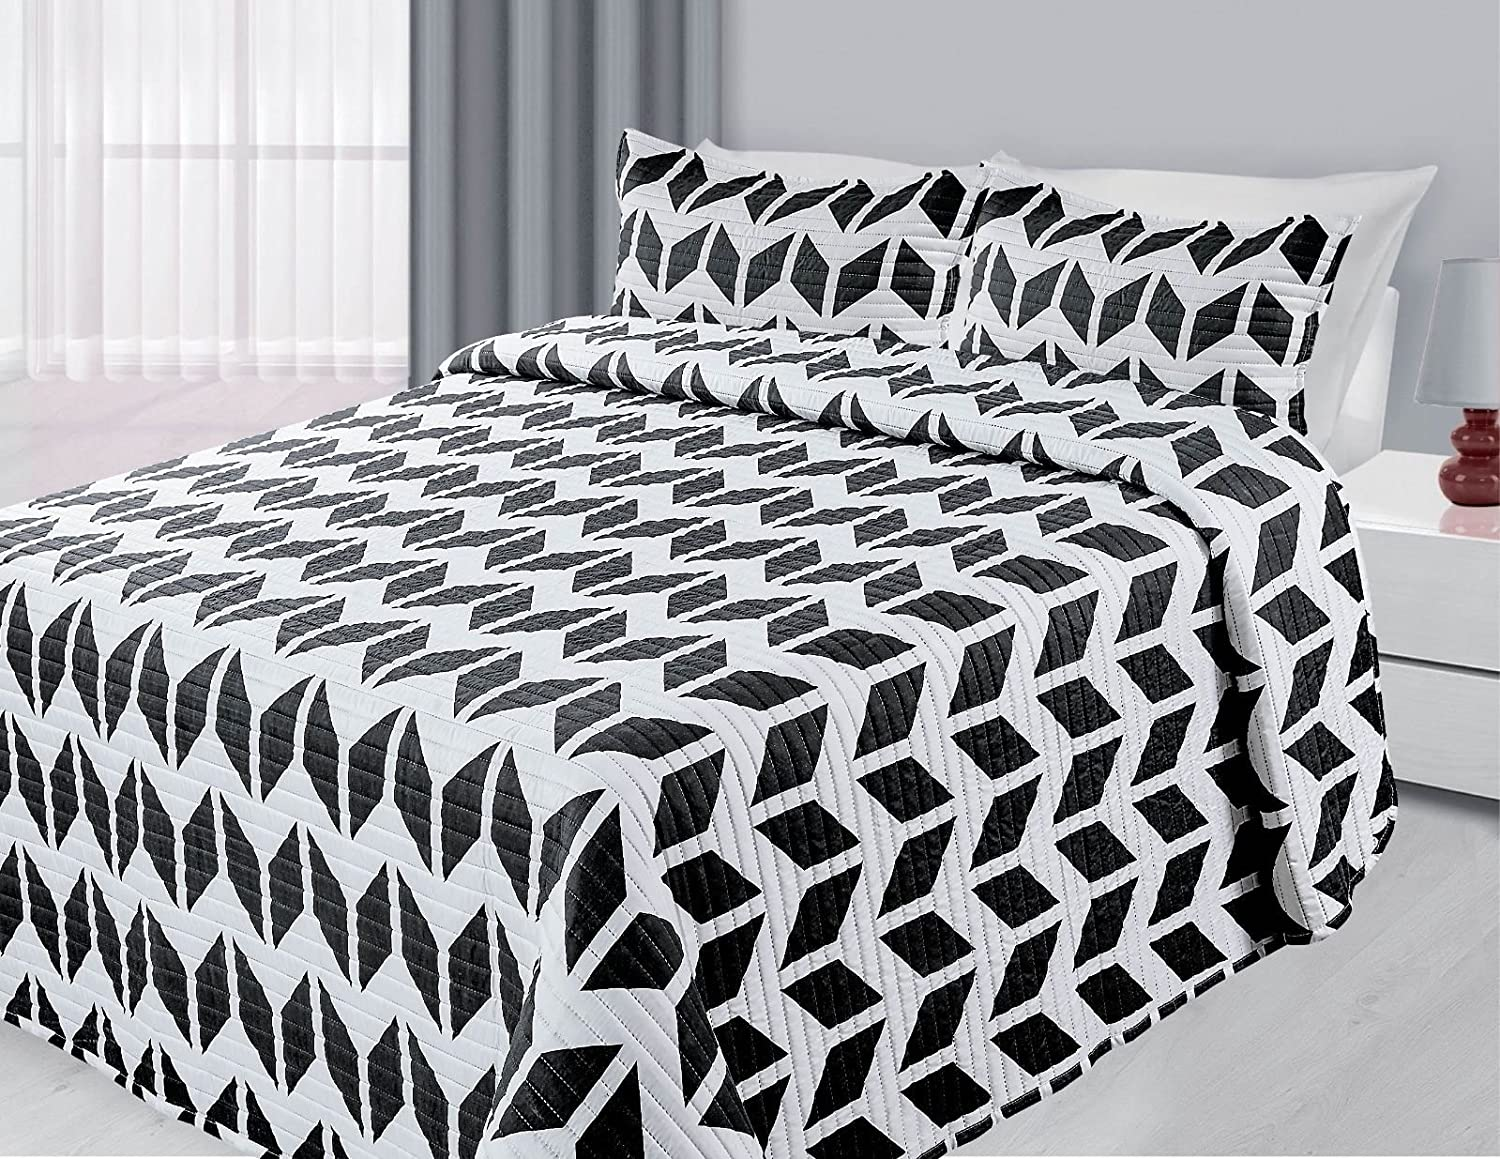 EMPIRE Reversible 3-Piece Quilted Printed Bedding Bedspread Coverlet New (Black Zig Zag, Queen)